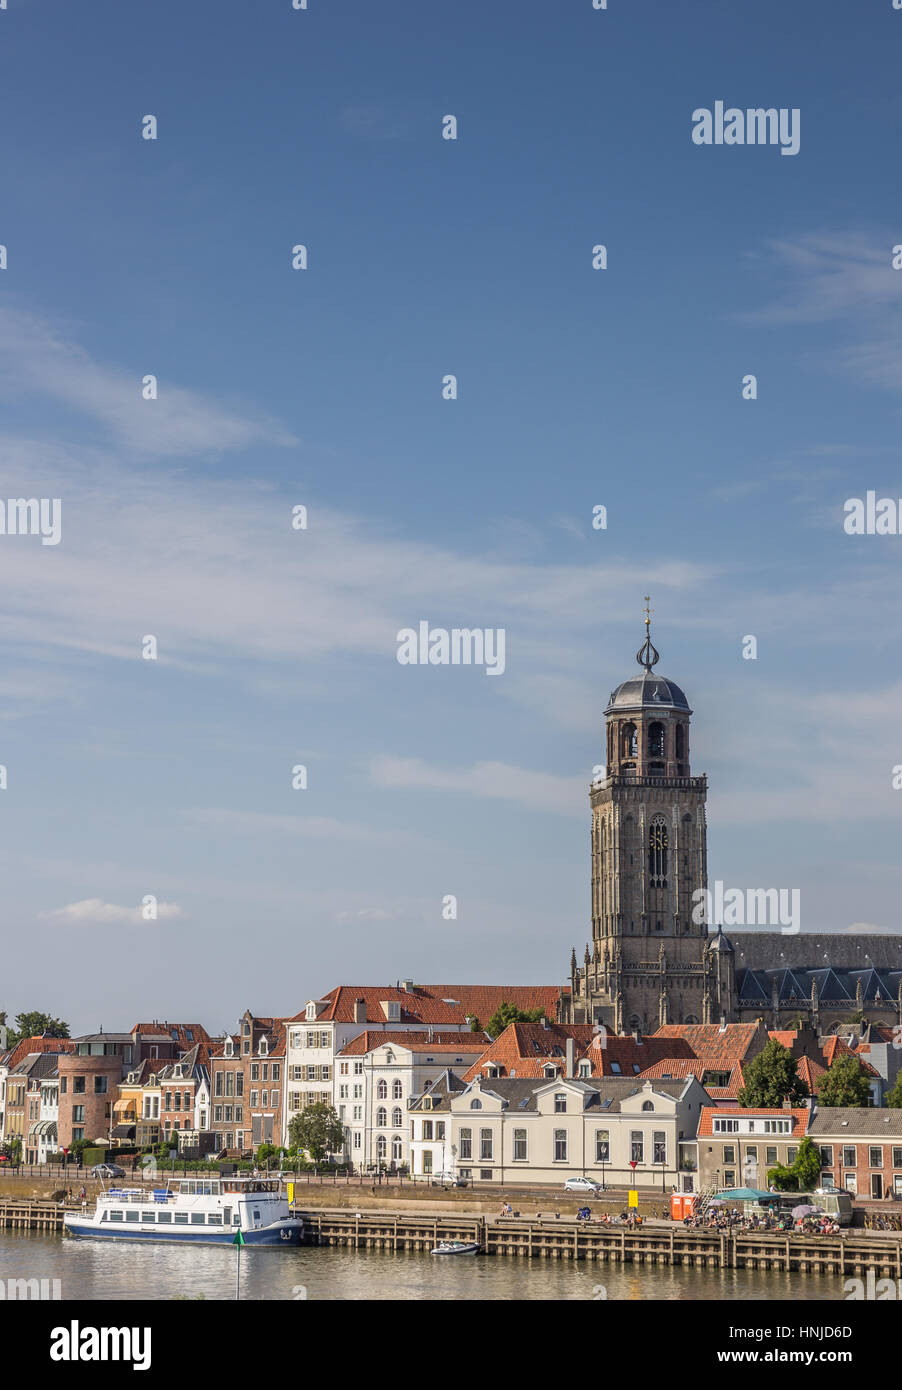 Old houses and Lebuinus church at the waterfront of Deventer, Holland Stock Photo